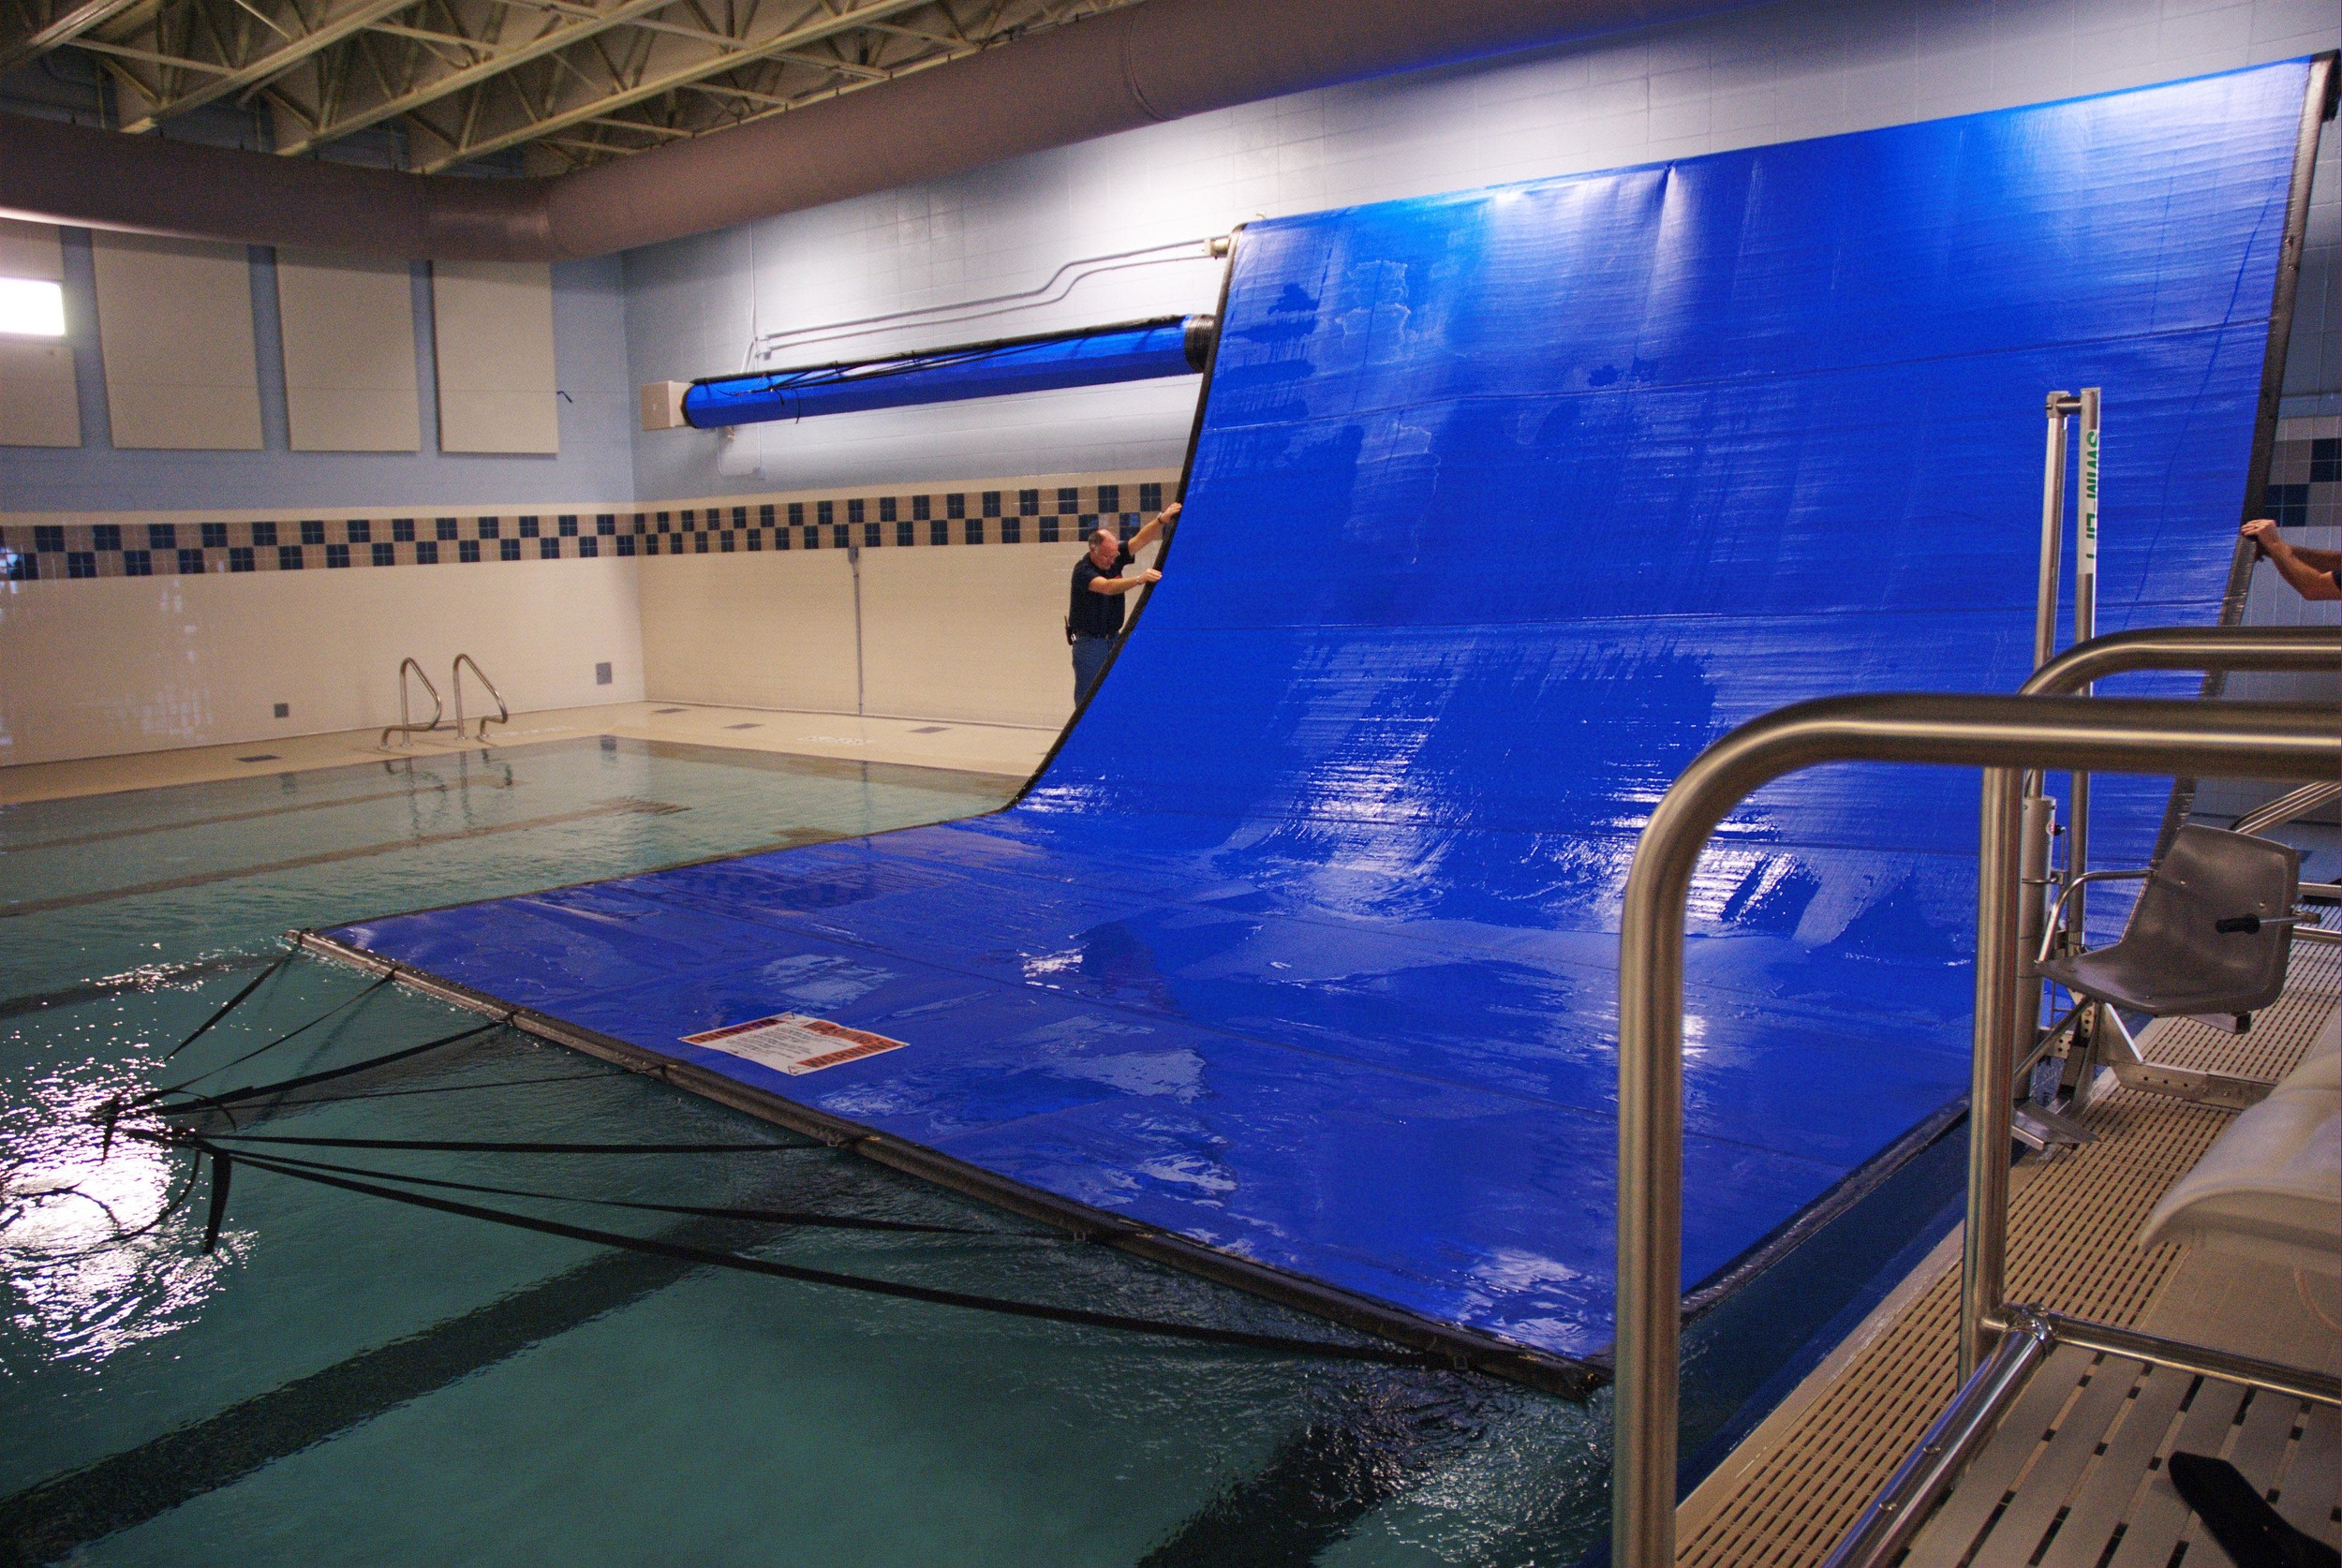 Automatic thermal pool cover at Poynette High School in Poynette, WI